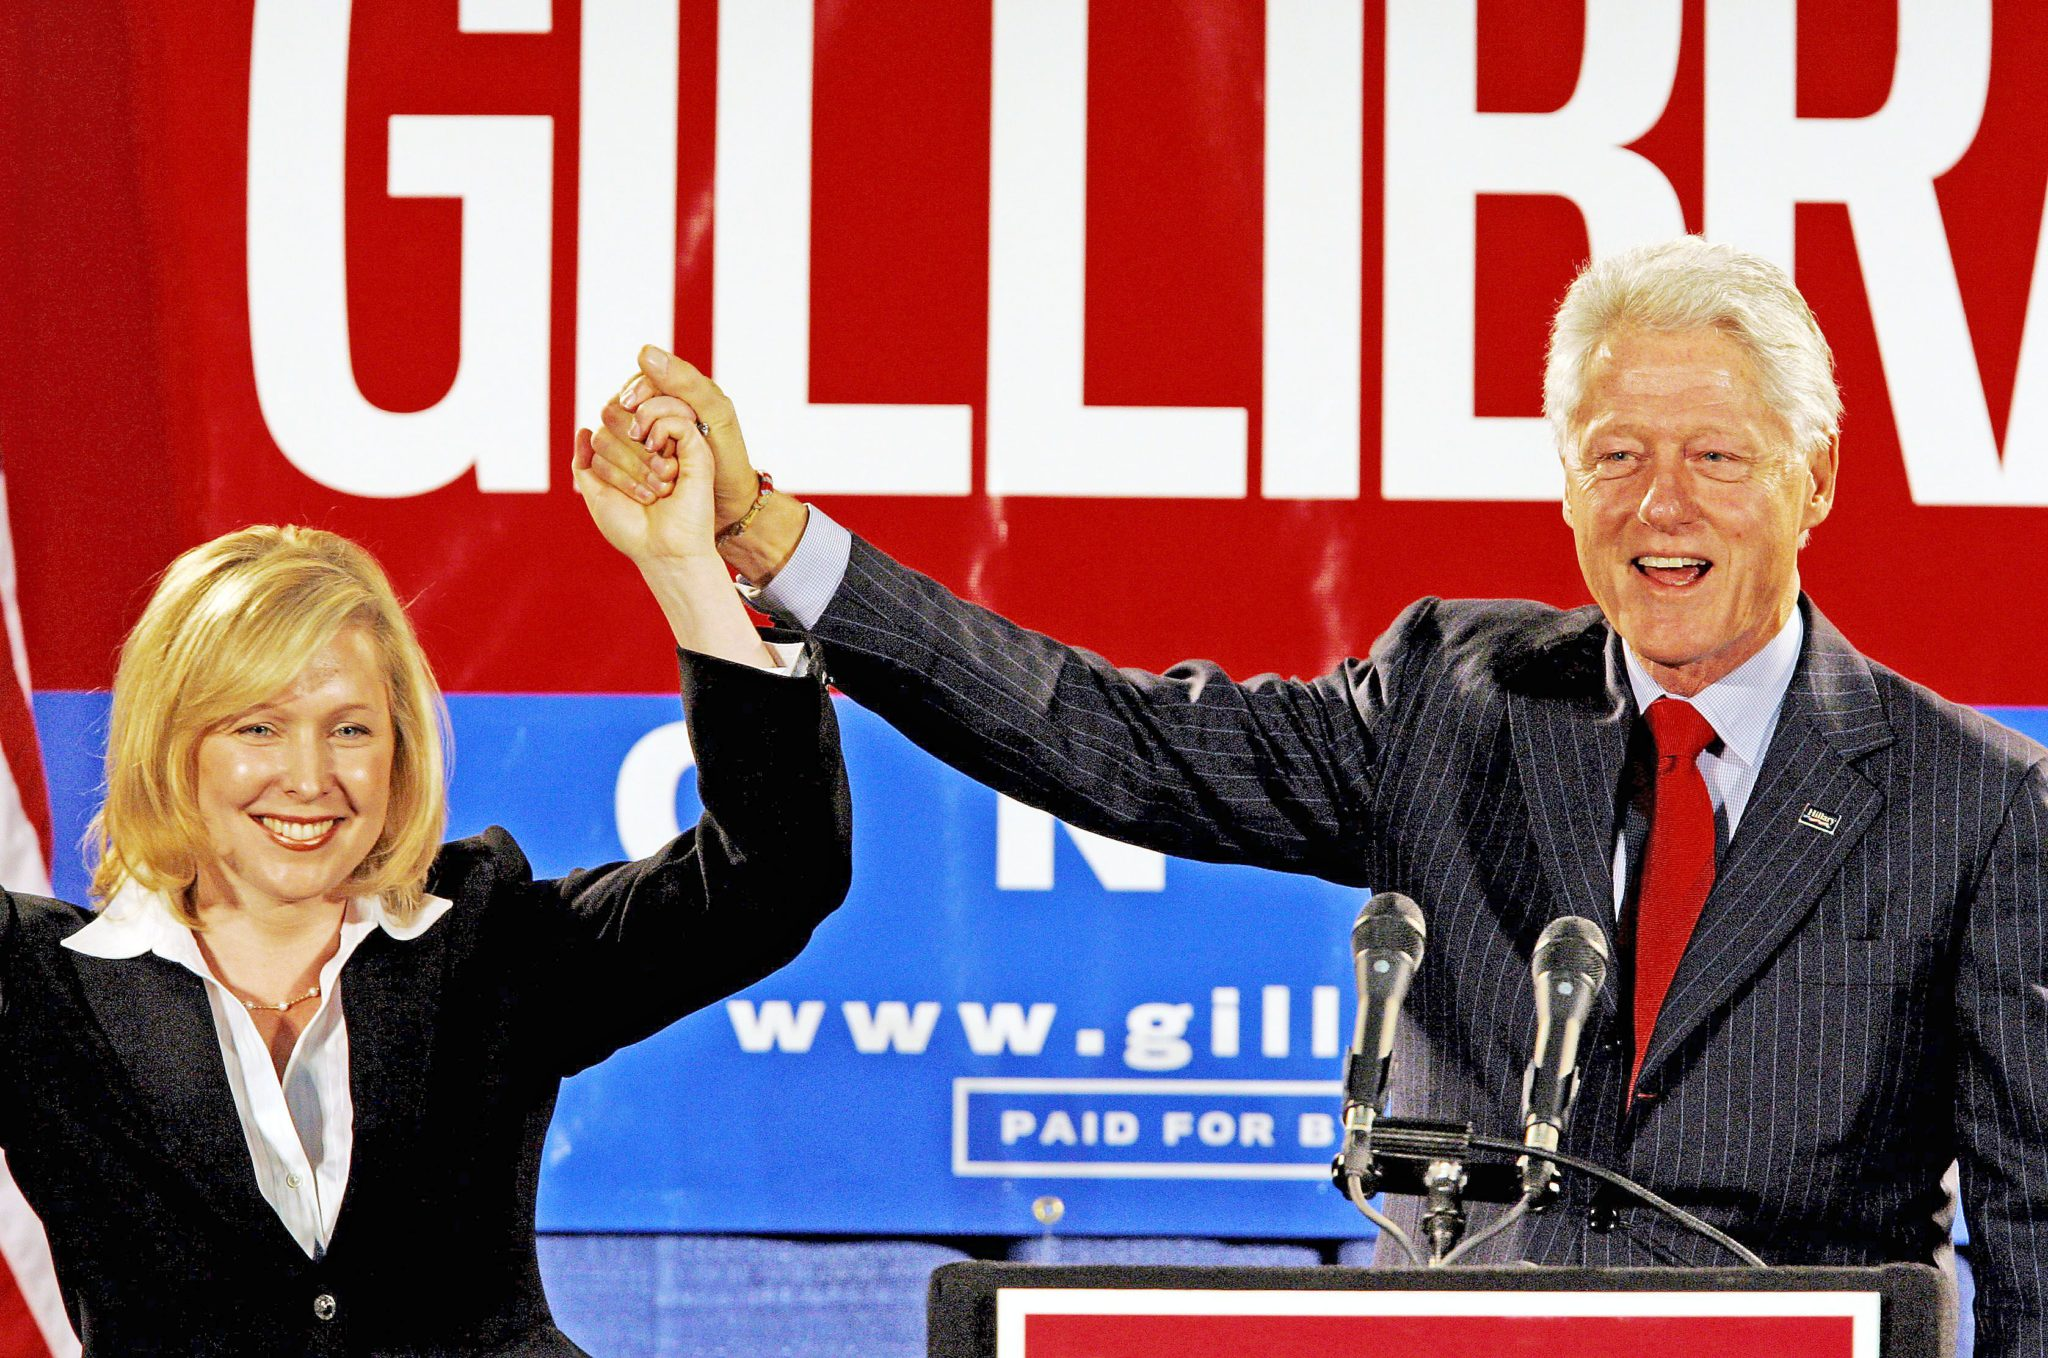 Congresswoman Gillibrand campaigning for re-election last year with President Bill Clinton.